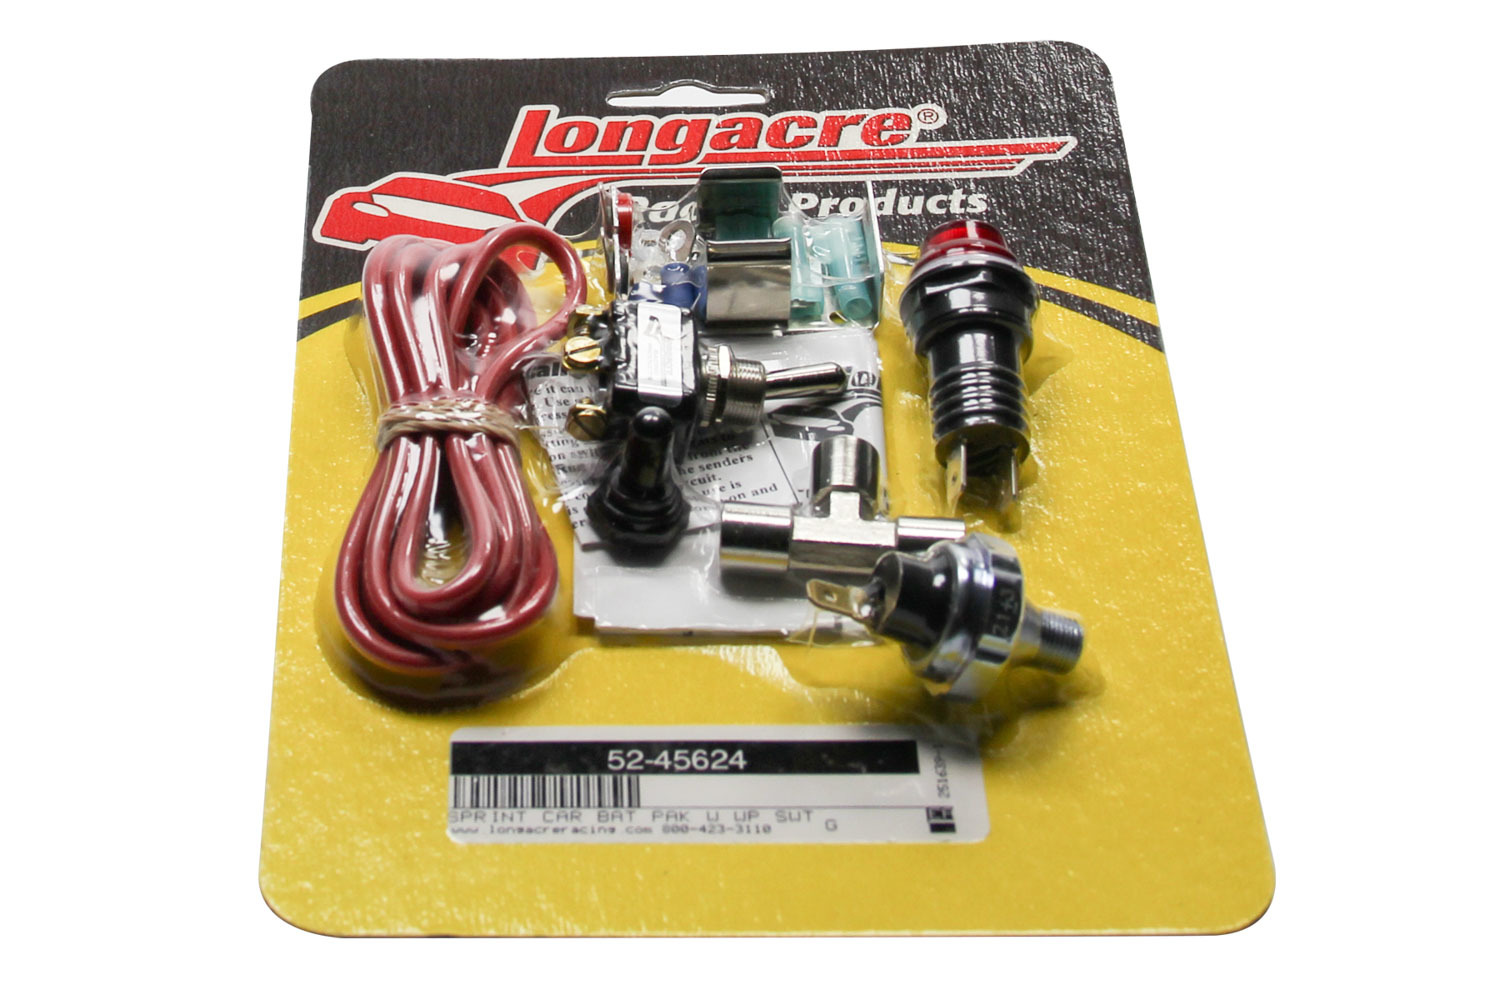 Battery Pack For Sprint Car Weatherproof Switch